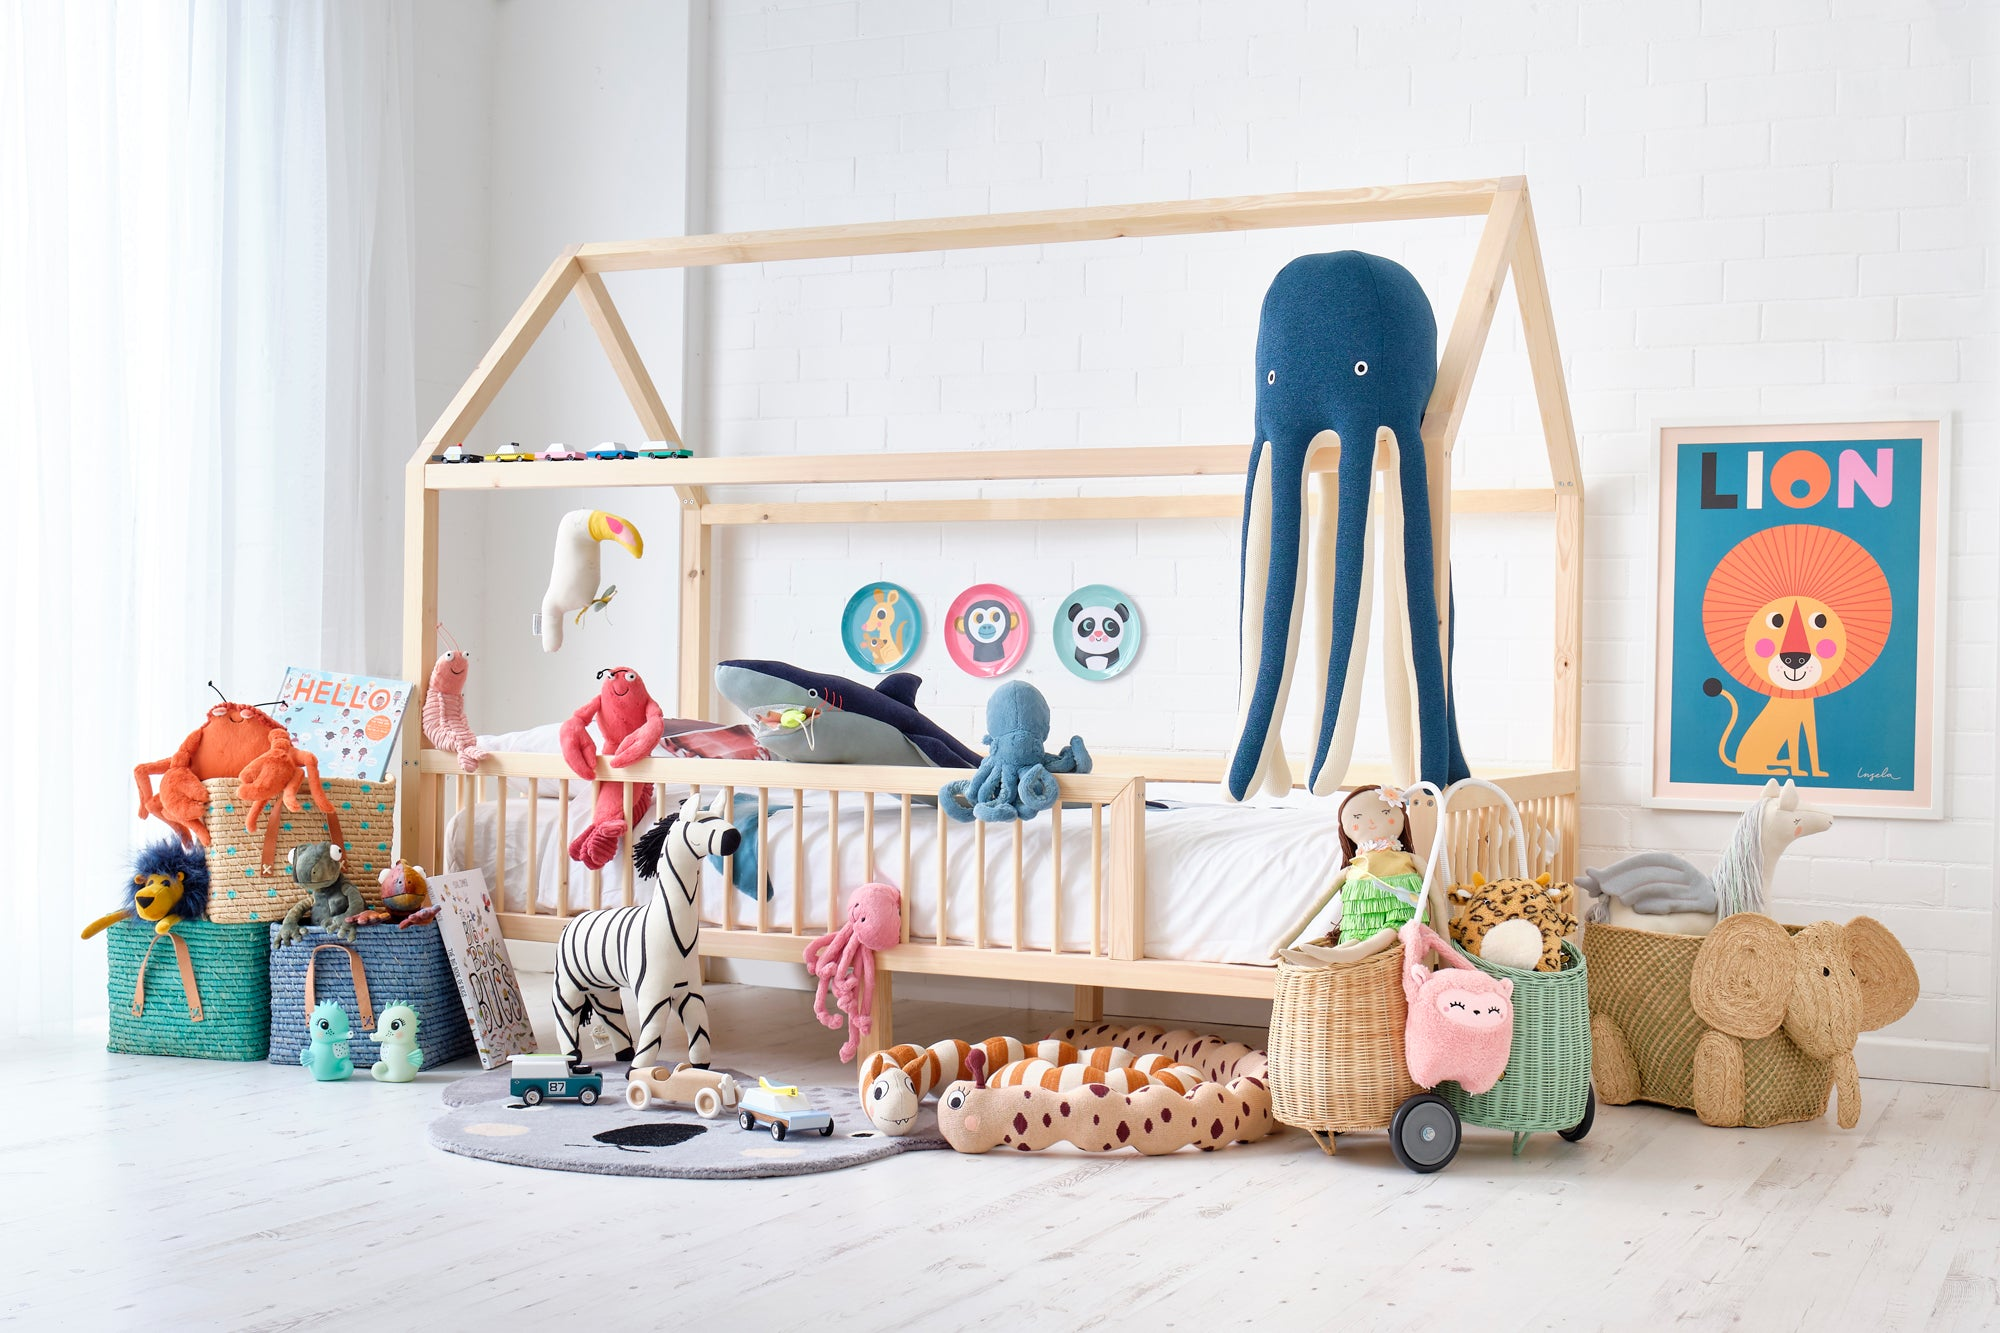 'Treasure Island' Children's Bedroom, Toys and Accessories, styled by Bobby Rabbit.